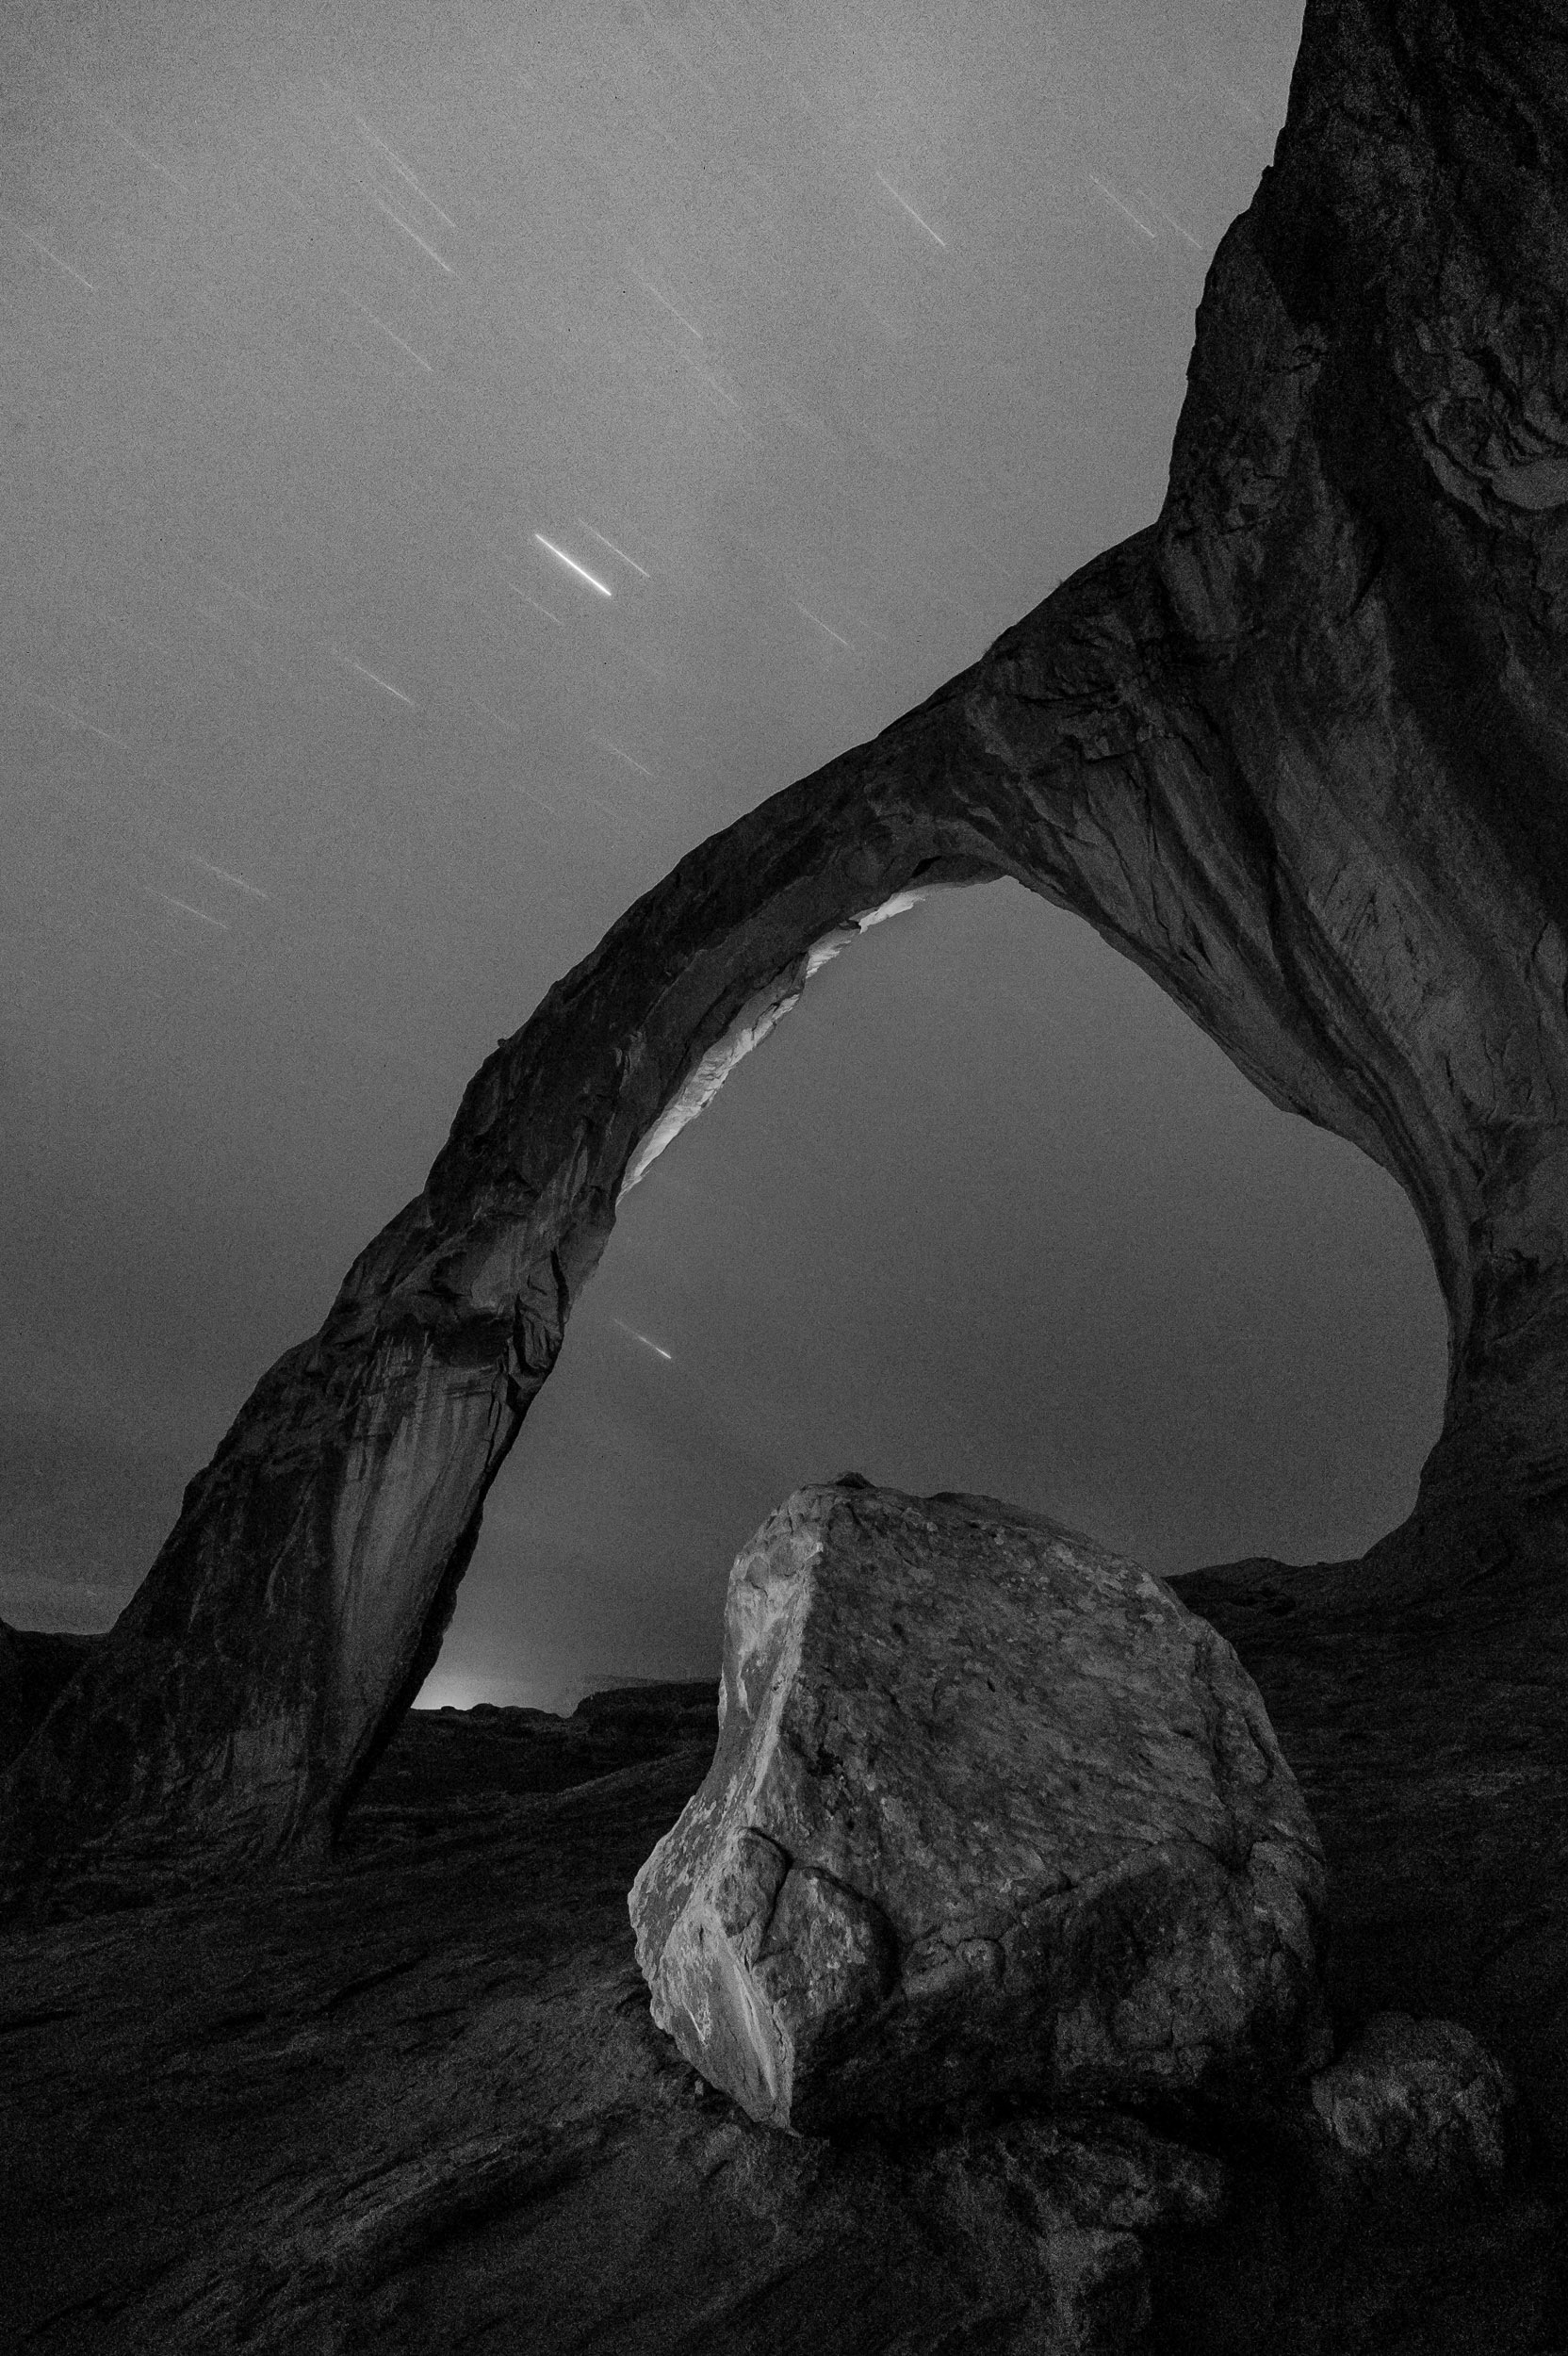 Corona Arch, Moab, Utah—the better (I think) of my two setups from the location. Nikon D3s, Irix 15mm f/2.4 lens. 985 seconds, f/5.6, ISO 2500.